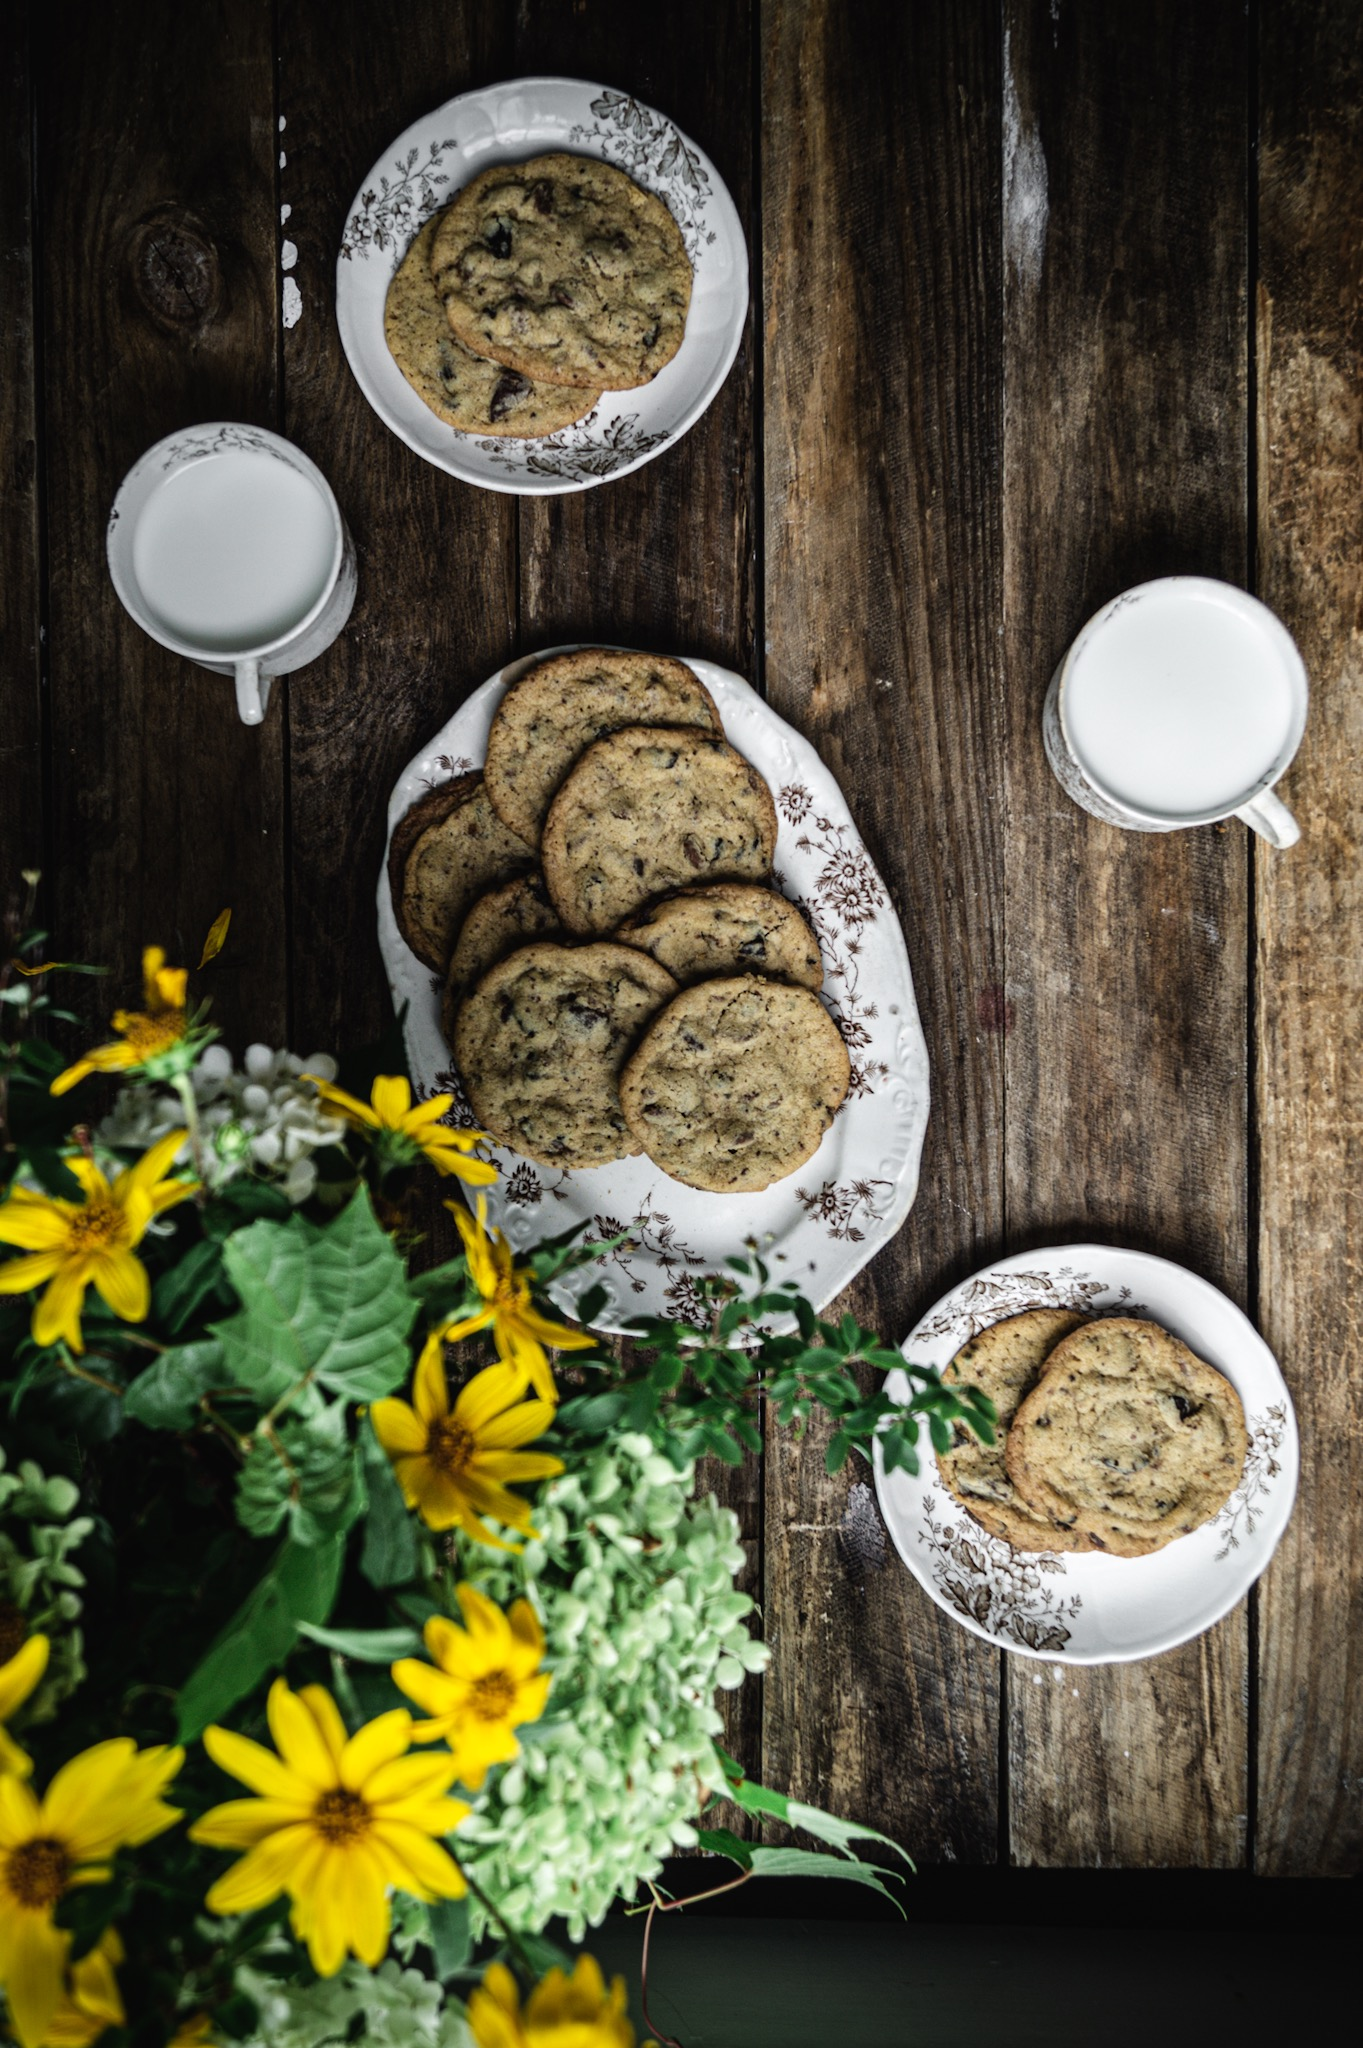 cold milk warm cookies and a bouquet of wild flowers